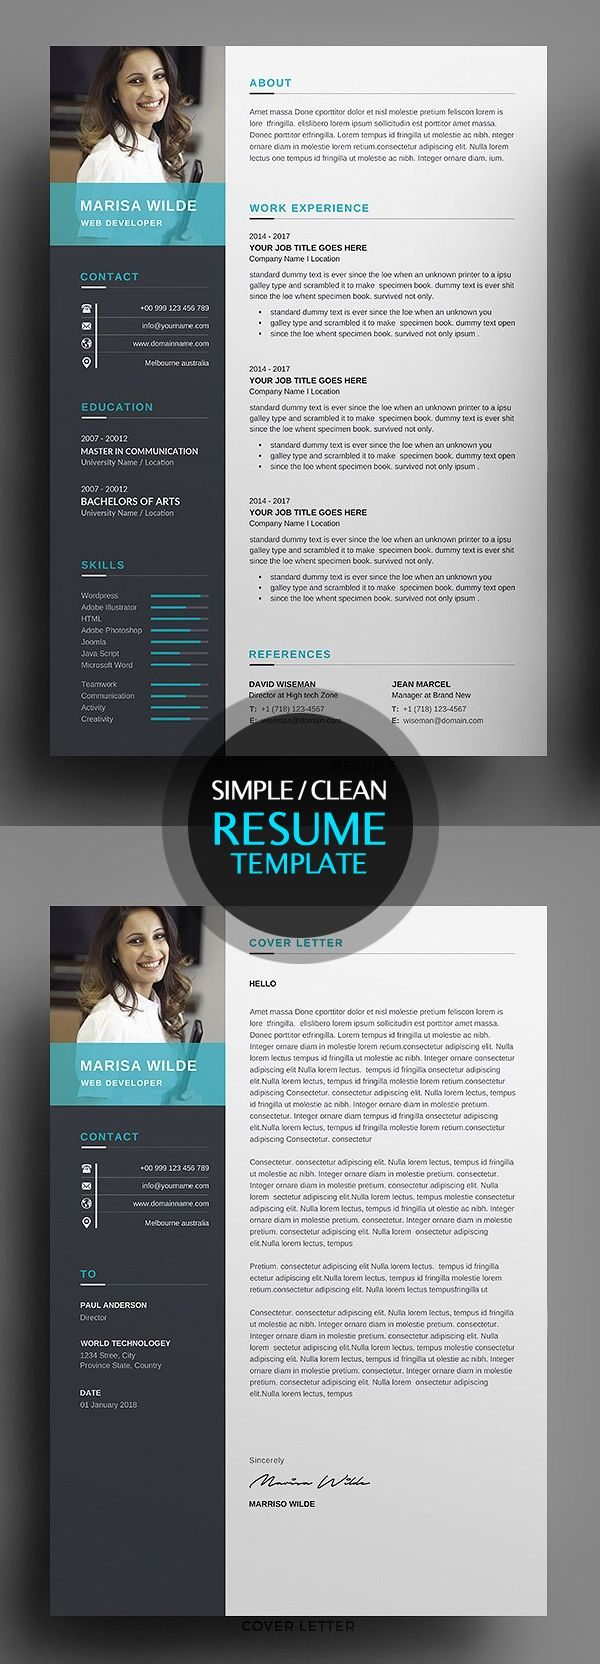 Fresh Simple Clean Resume Templates and Cover